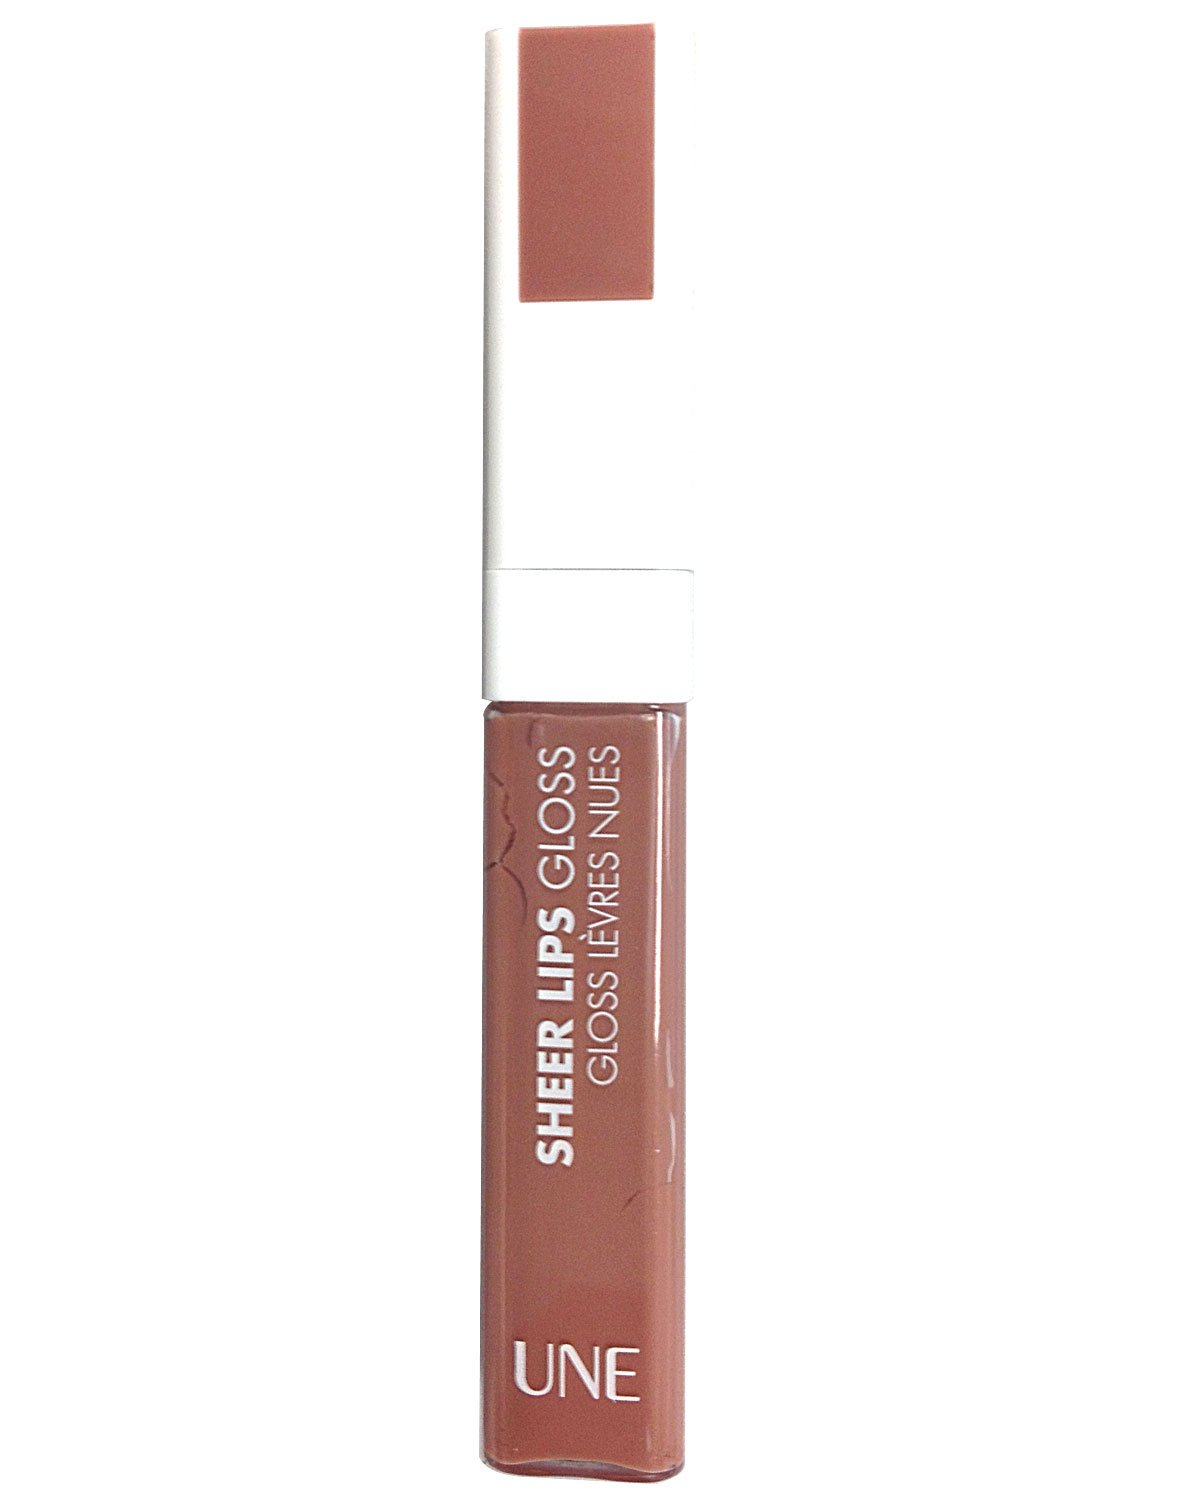 UNE Sheer Lips Gloss Lipgloss - S10 Bálsamo Labial Gloss - color: S11 UNE by Bourjois